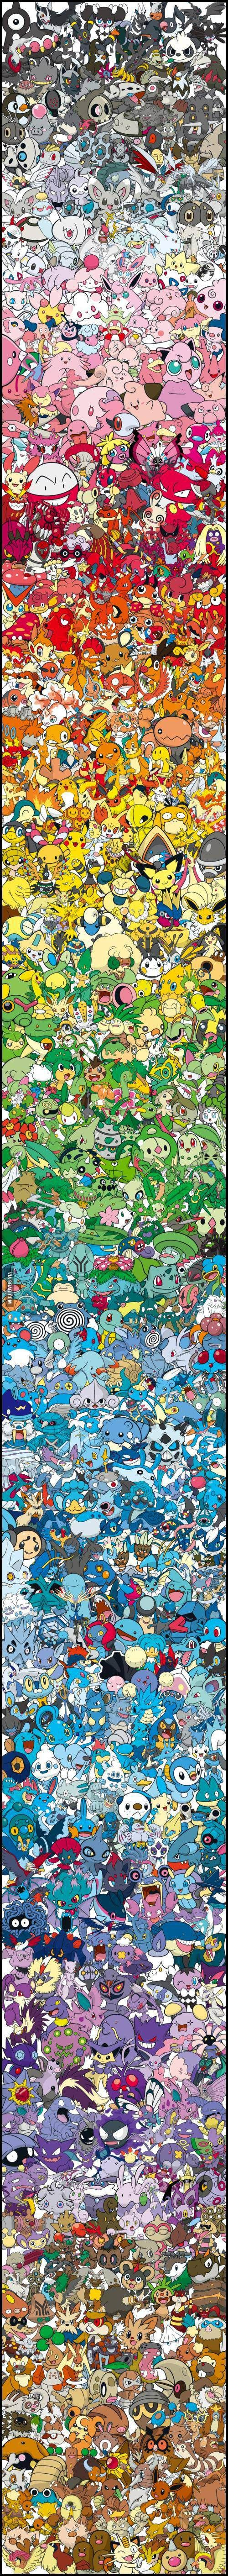 Pokemon Spectrum: Too cool